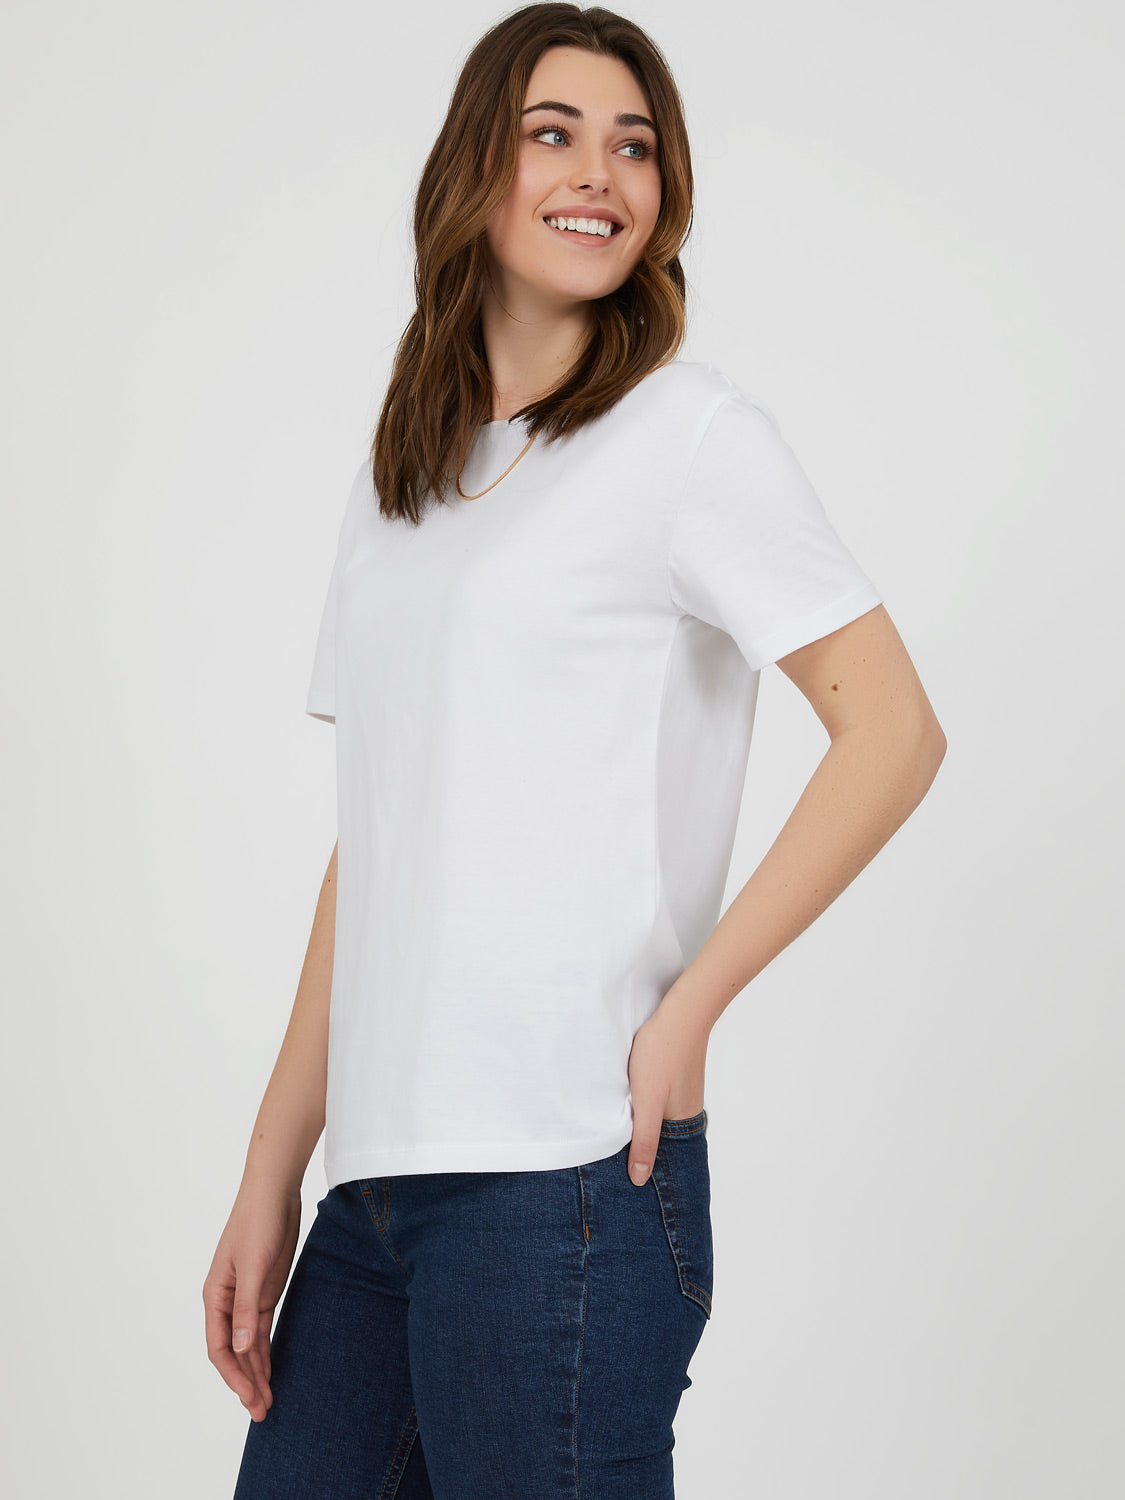 Short Sleeve Crew Neck T-Shirt